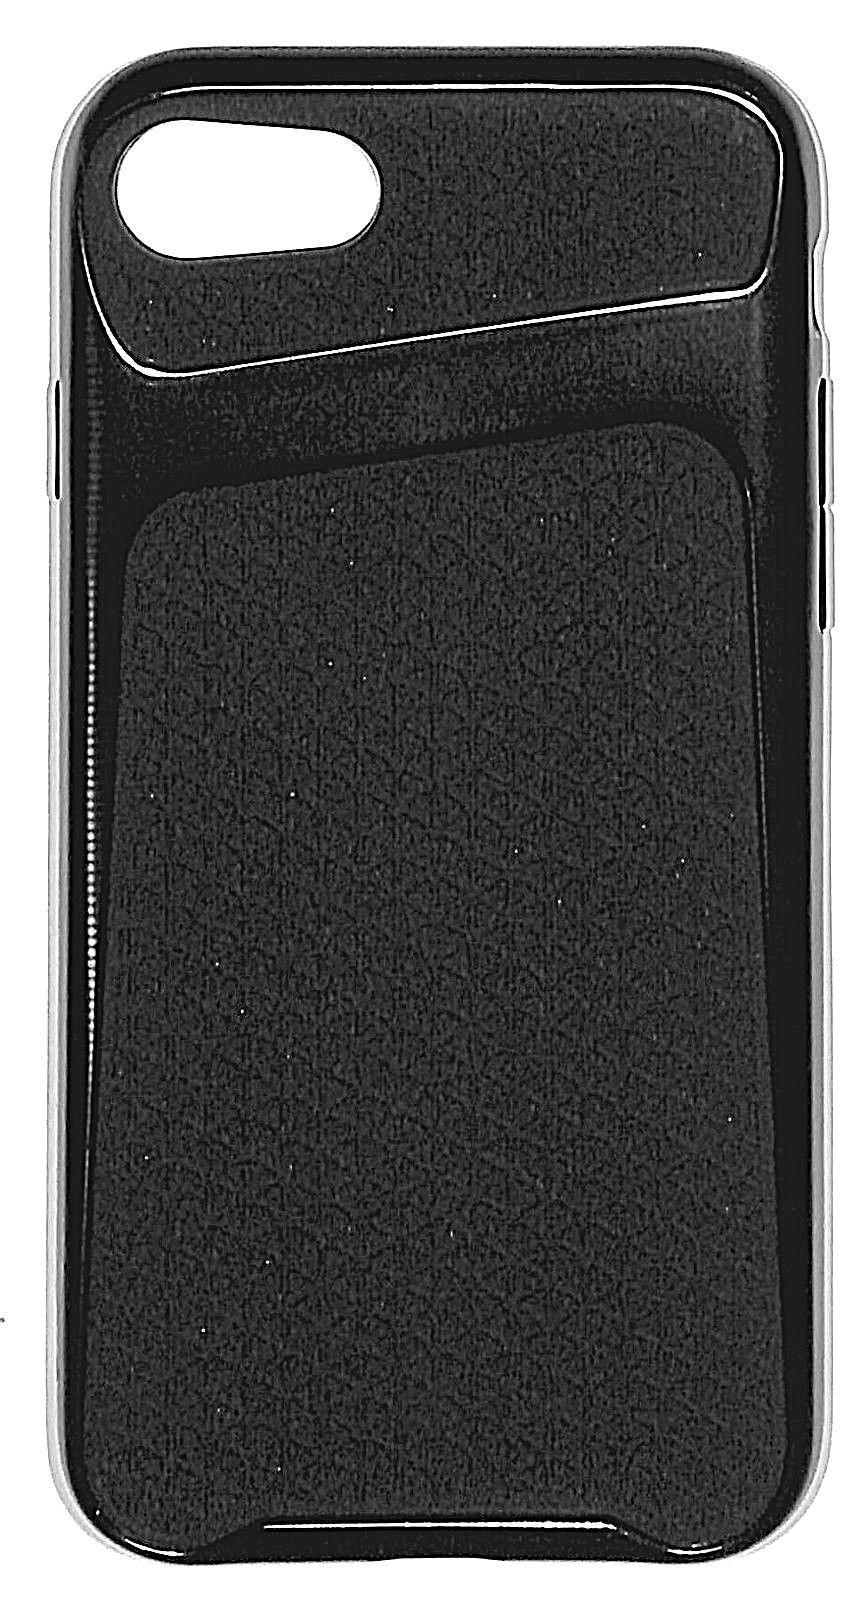 Maxace protective hybrid Case For iPhone 7, 8 Slim Cover